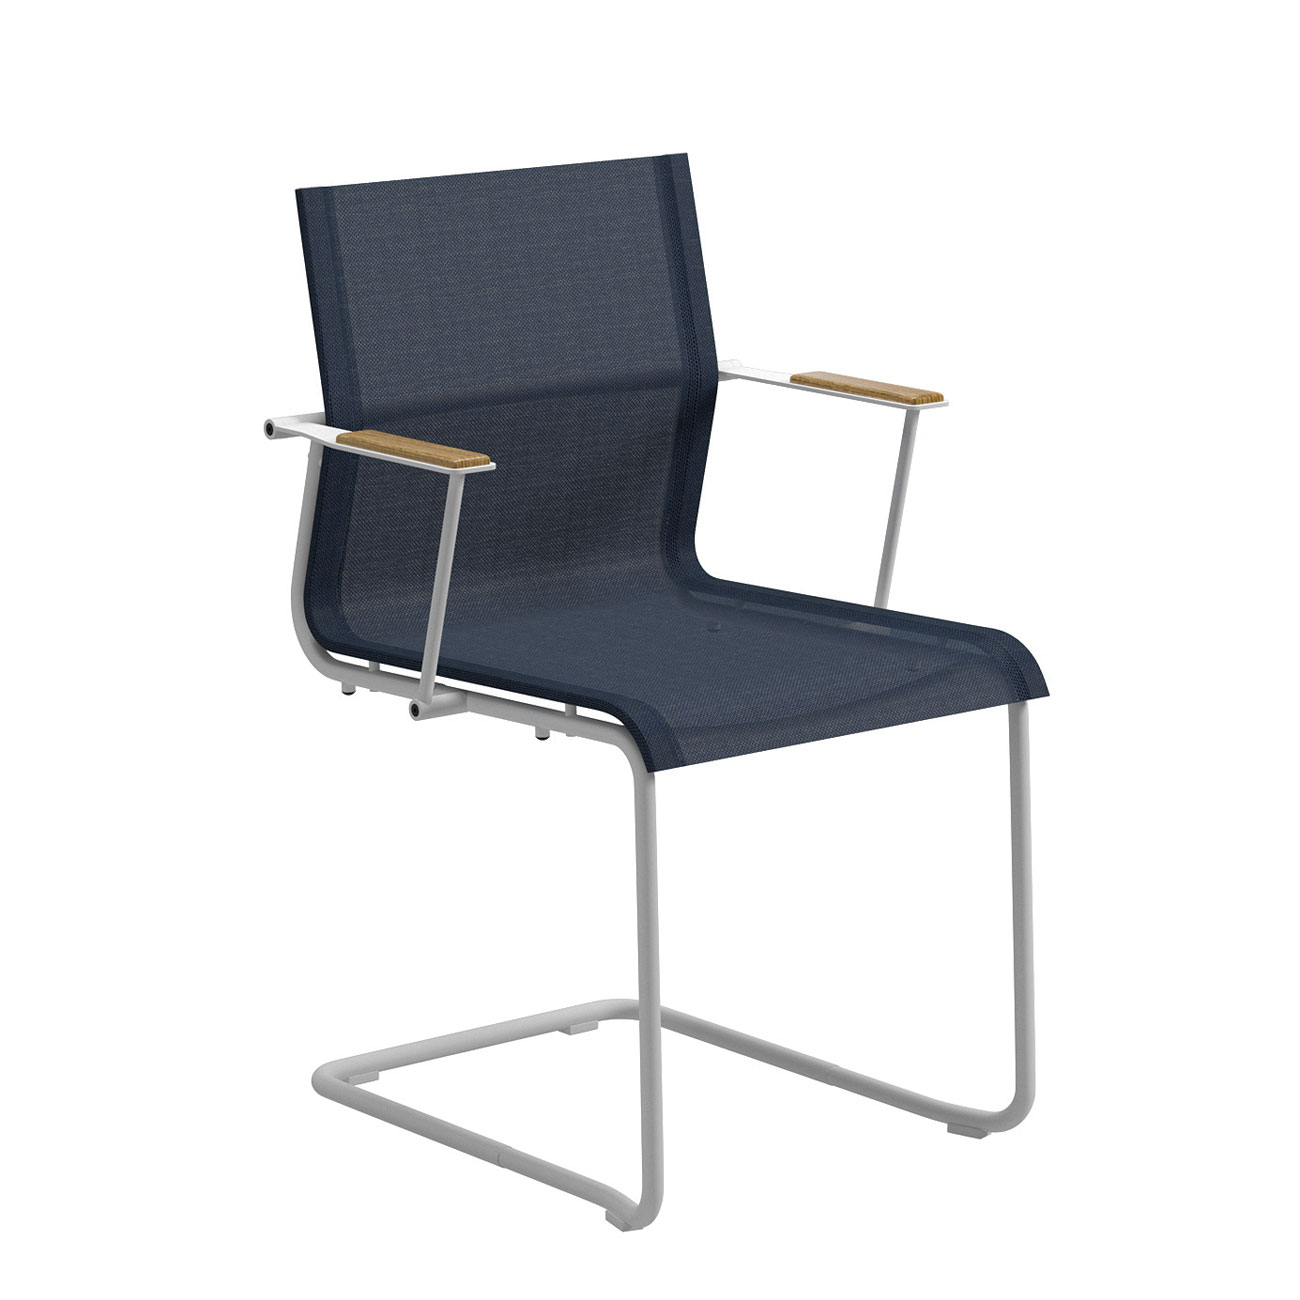 Oven Stabilizer Arm : Gloster sway stacking chair with arms white frame